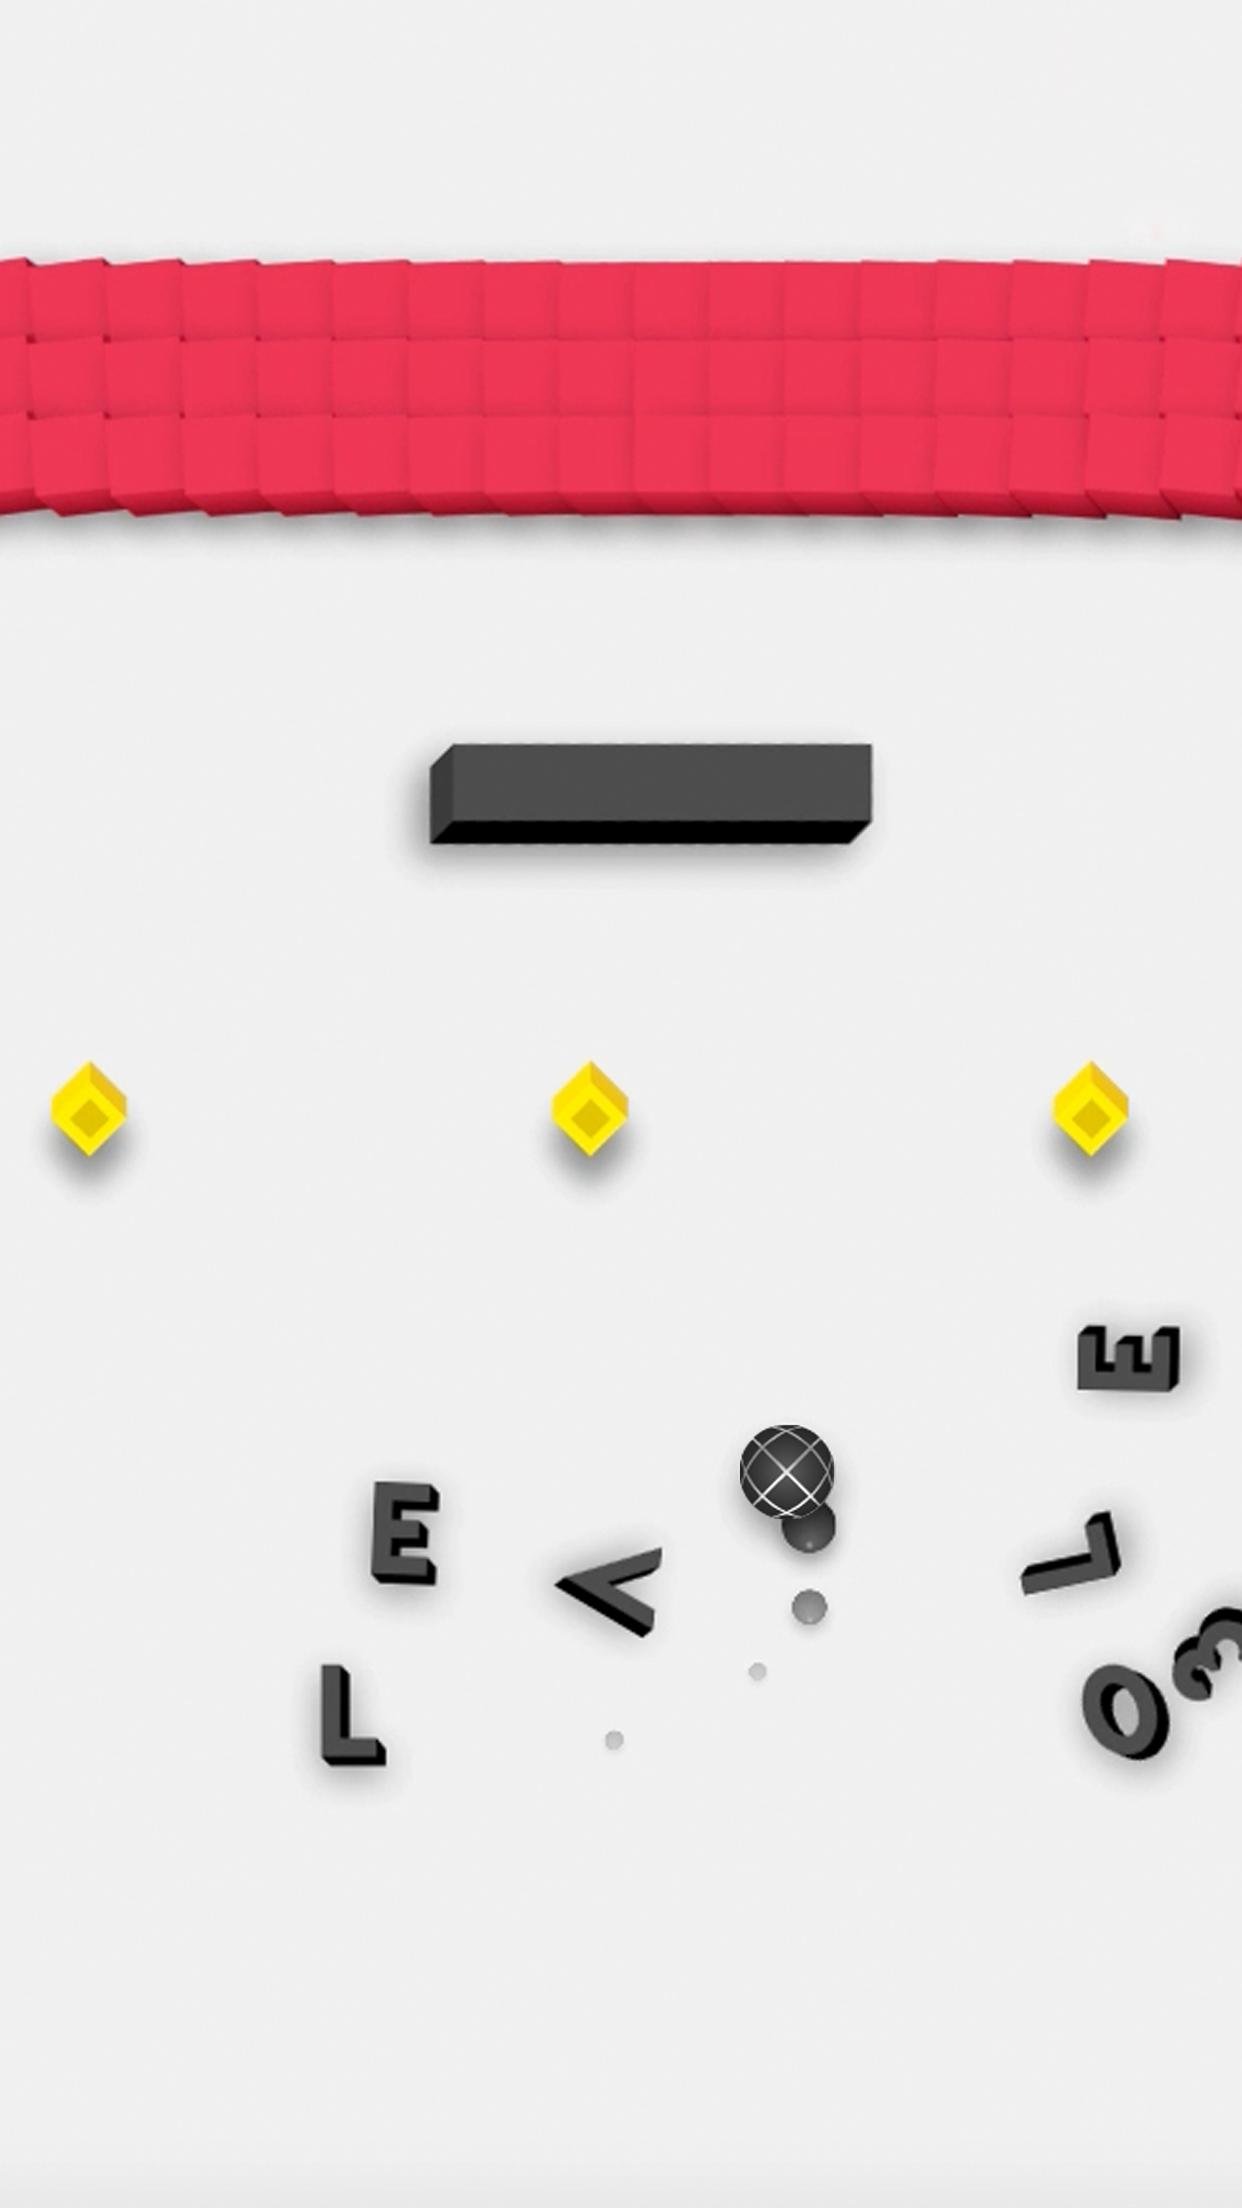 Color Bump 3D Balls - Avoid Red Balls for Android - APK Download